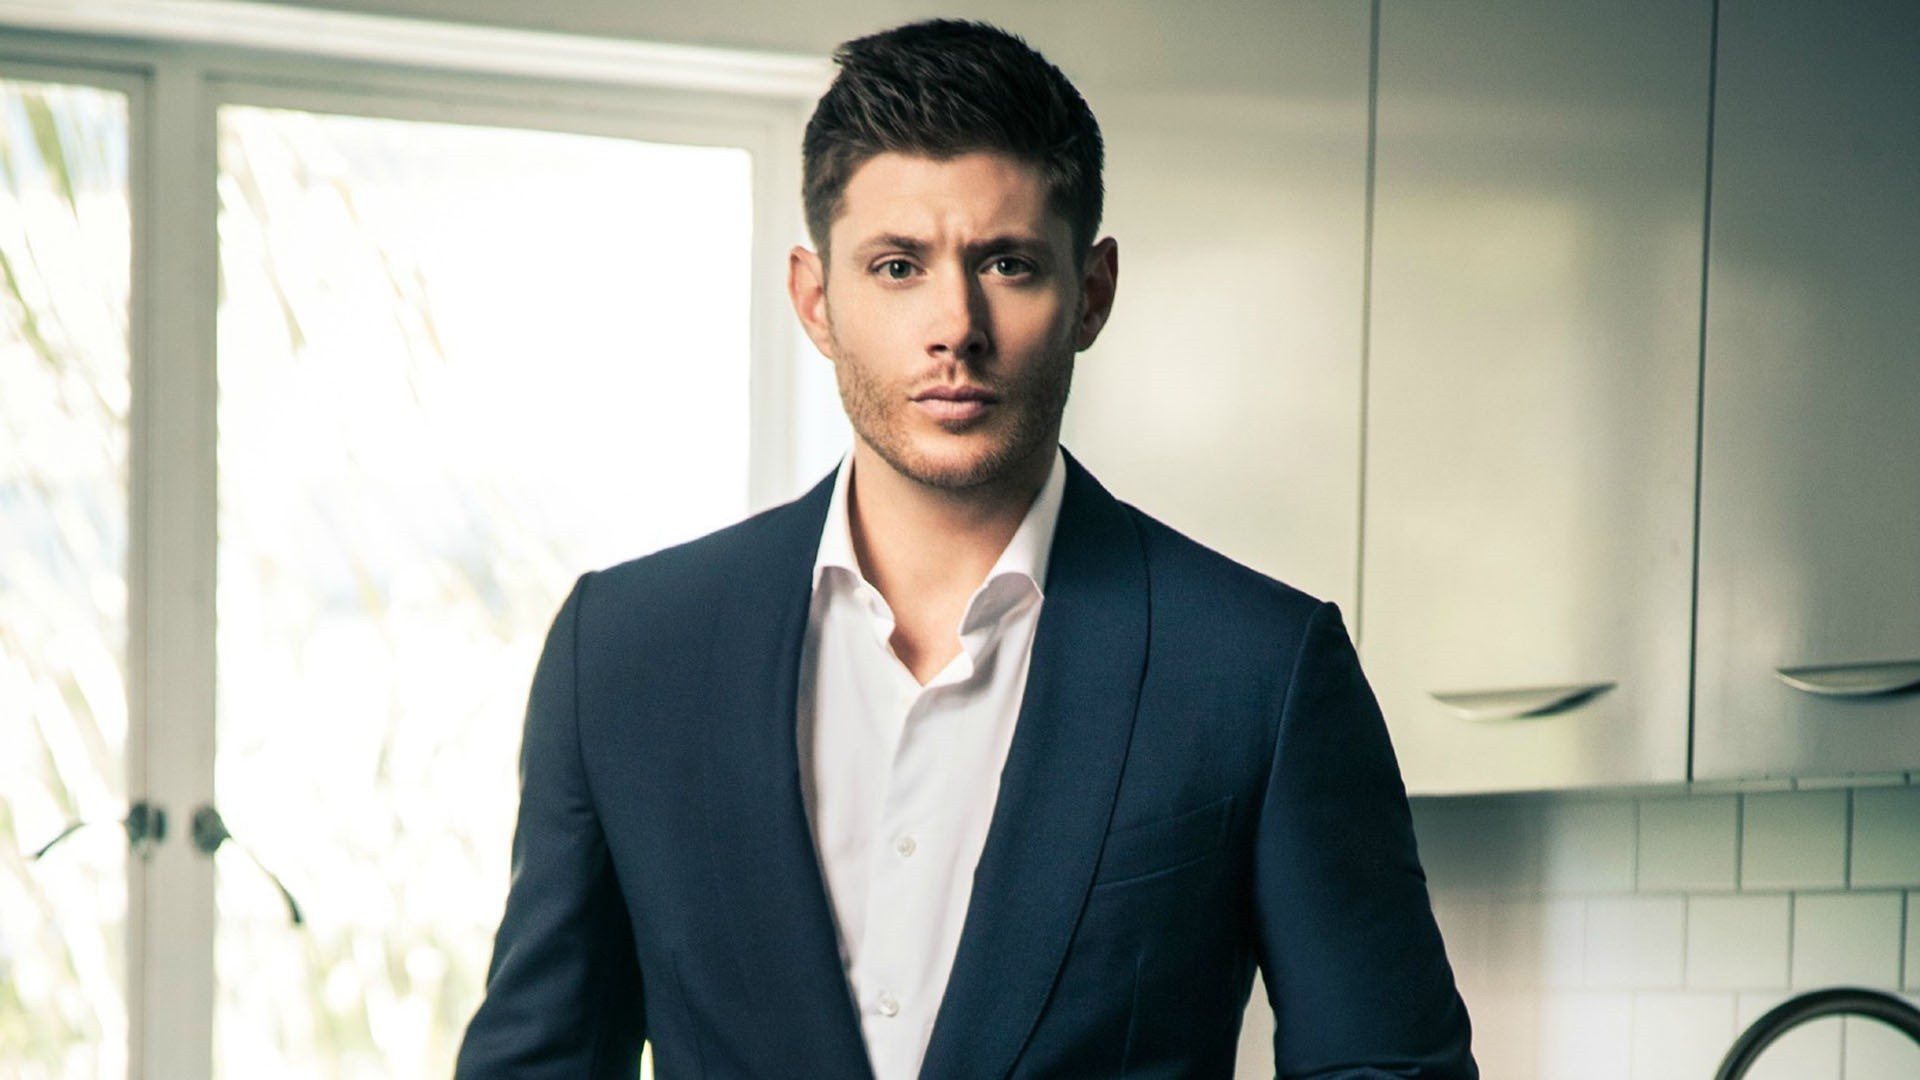 Jensen Ackles Wallpaper HD